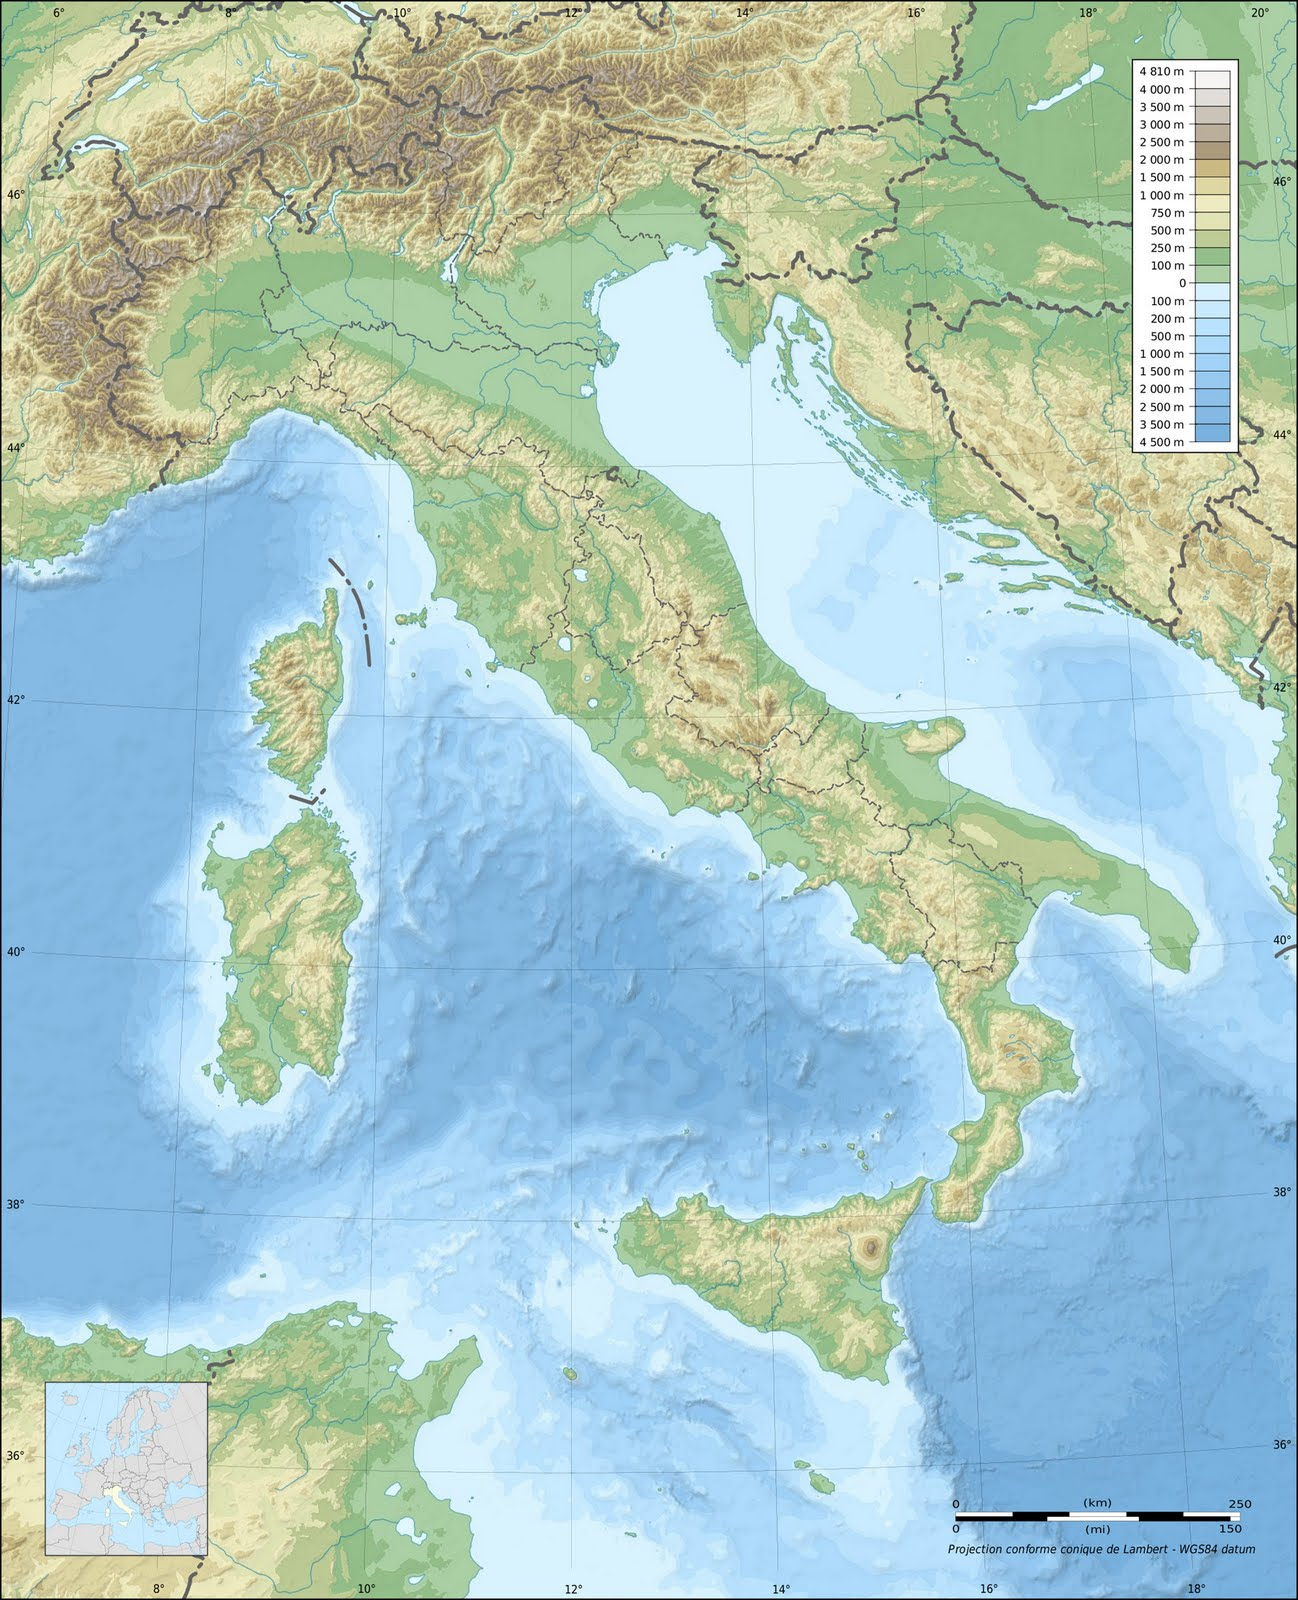 A World of Maps Topographic Map